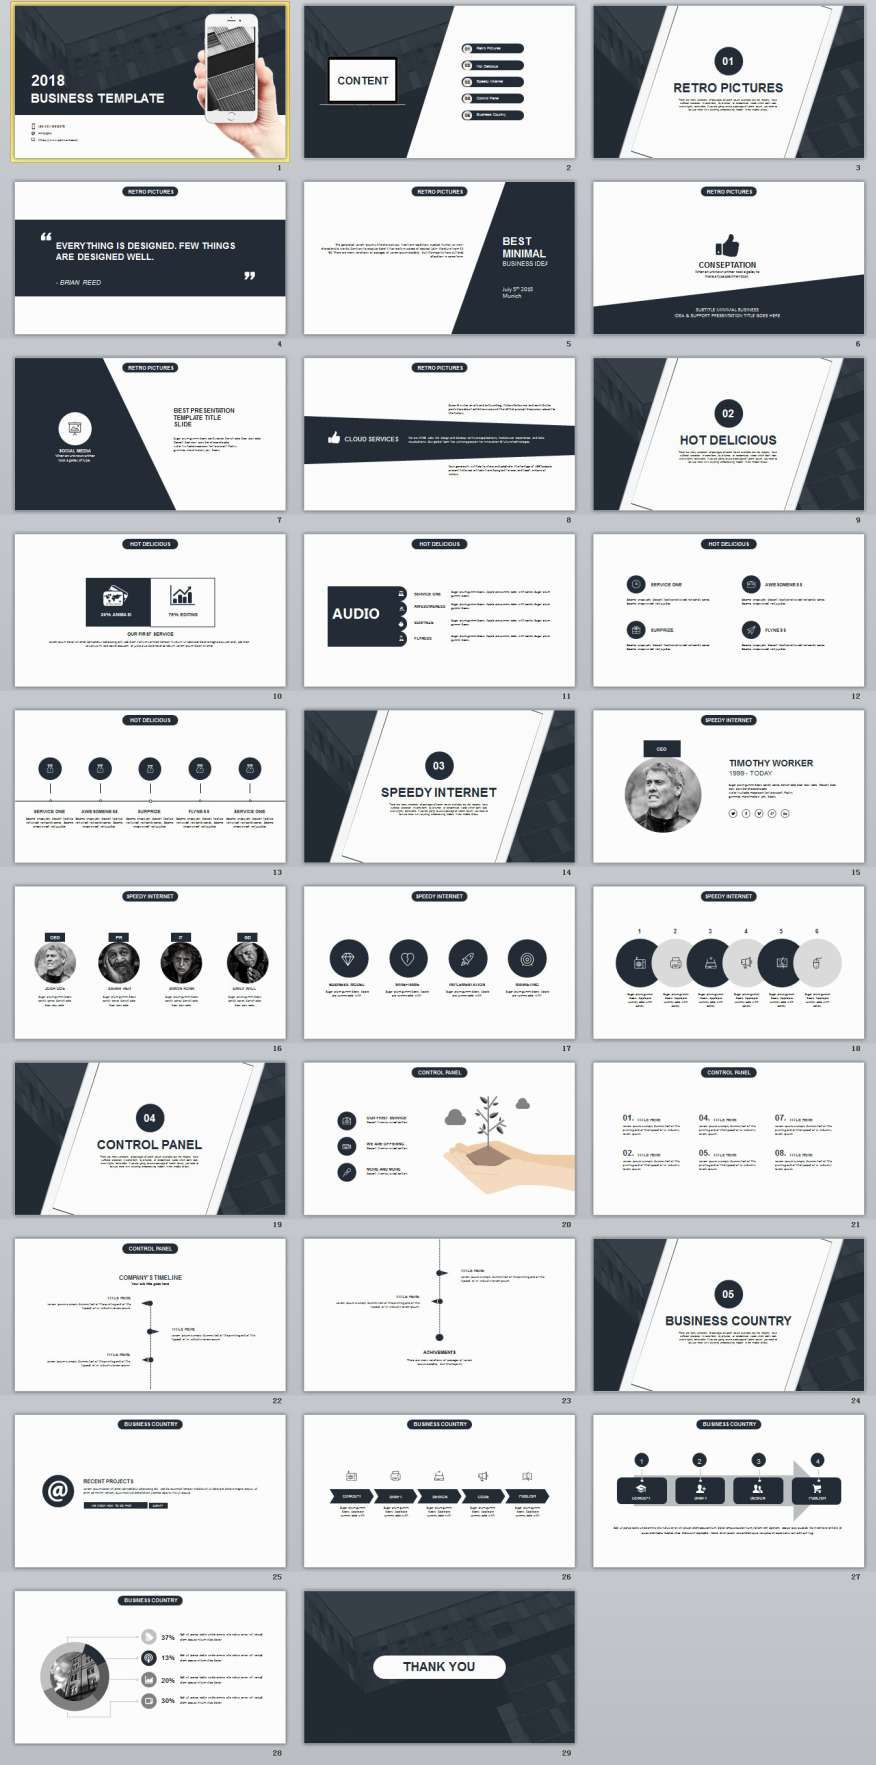 29 black business plan presentation powerpoint templates 29 black business plan presentation powerpoint templates toneelgroepblik Image collections